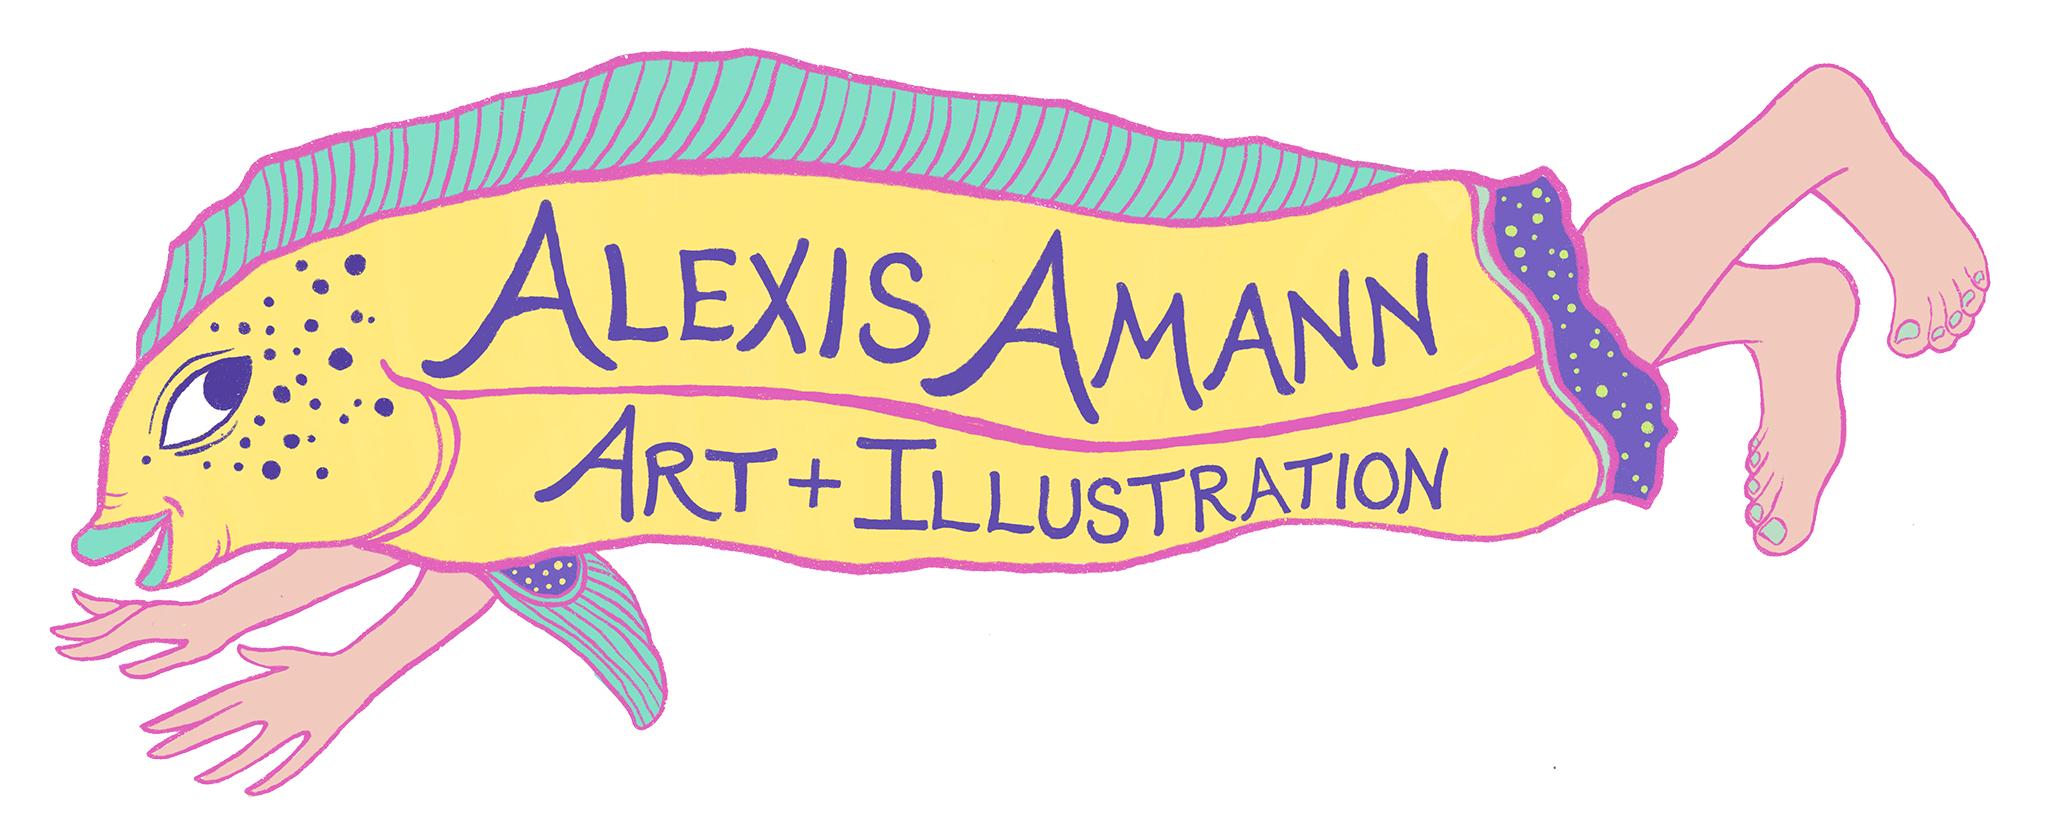 Alexis Amann Art and Illustration web.jpg